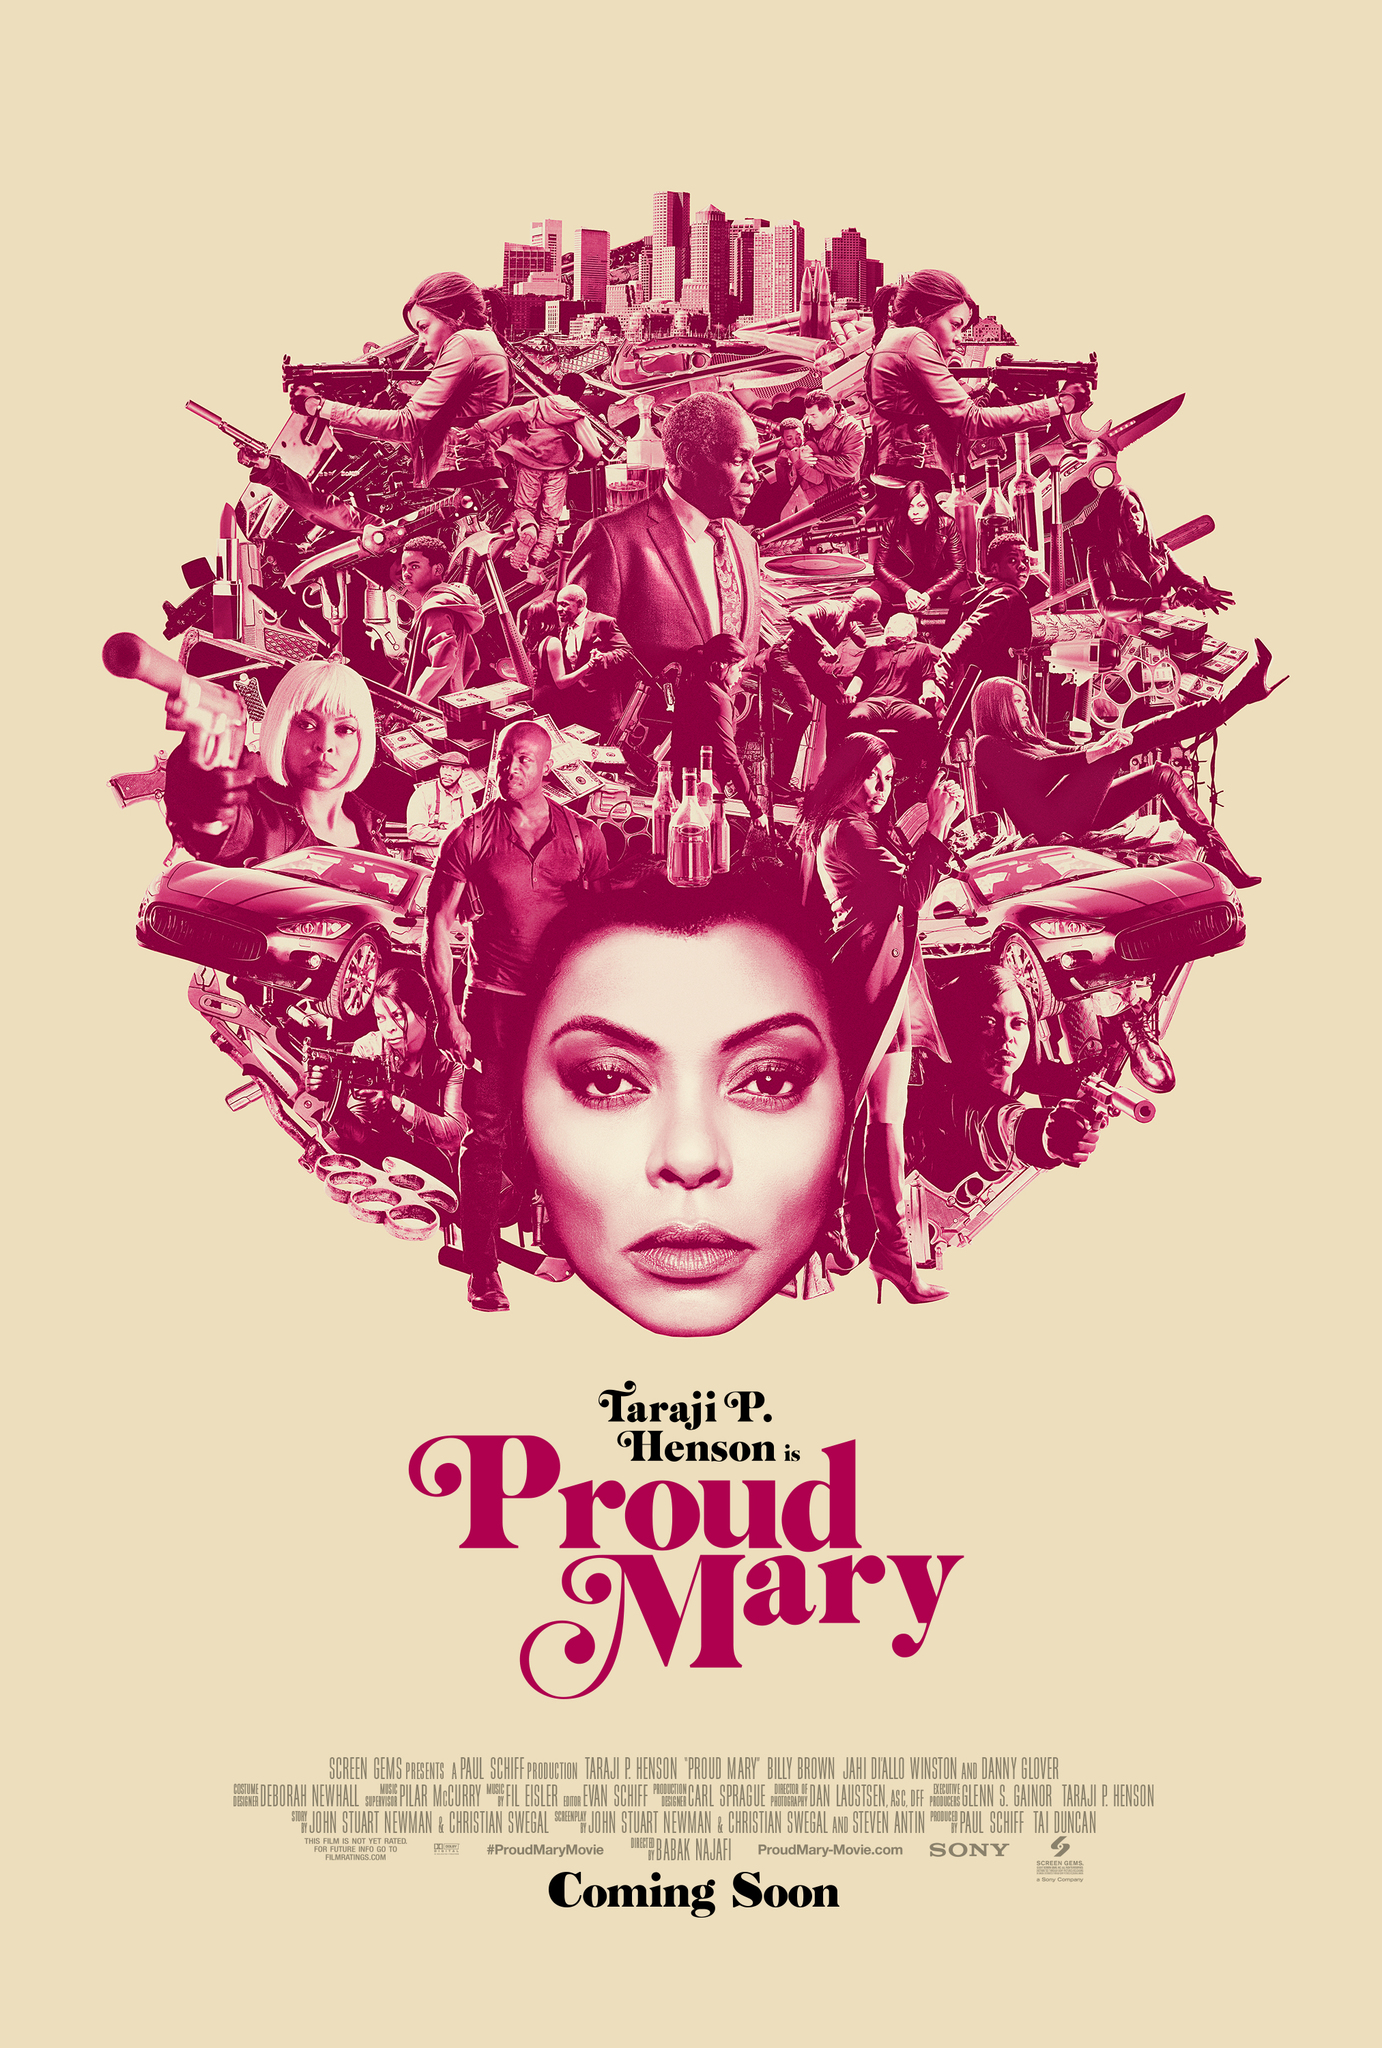 The film poster showing Taraji P. Henson's face in pink-and-white, with characters and scenes from the film arranged around her head to make an afro, also in pink-and-white.